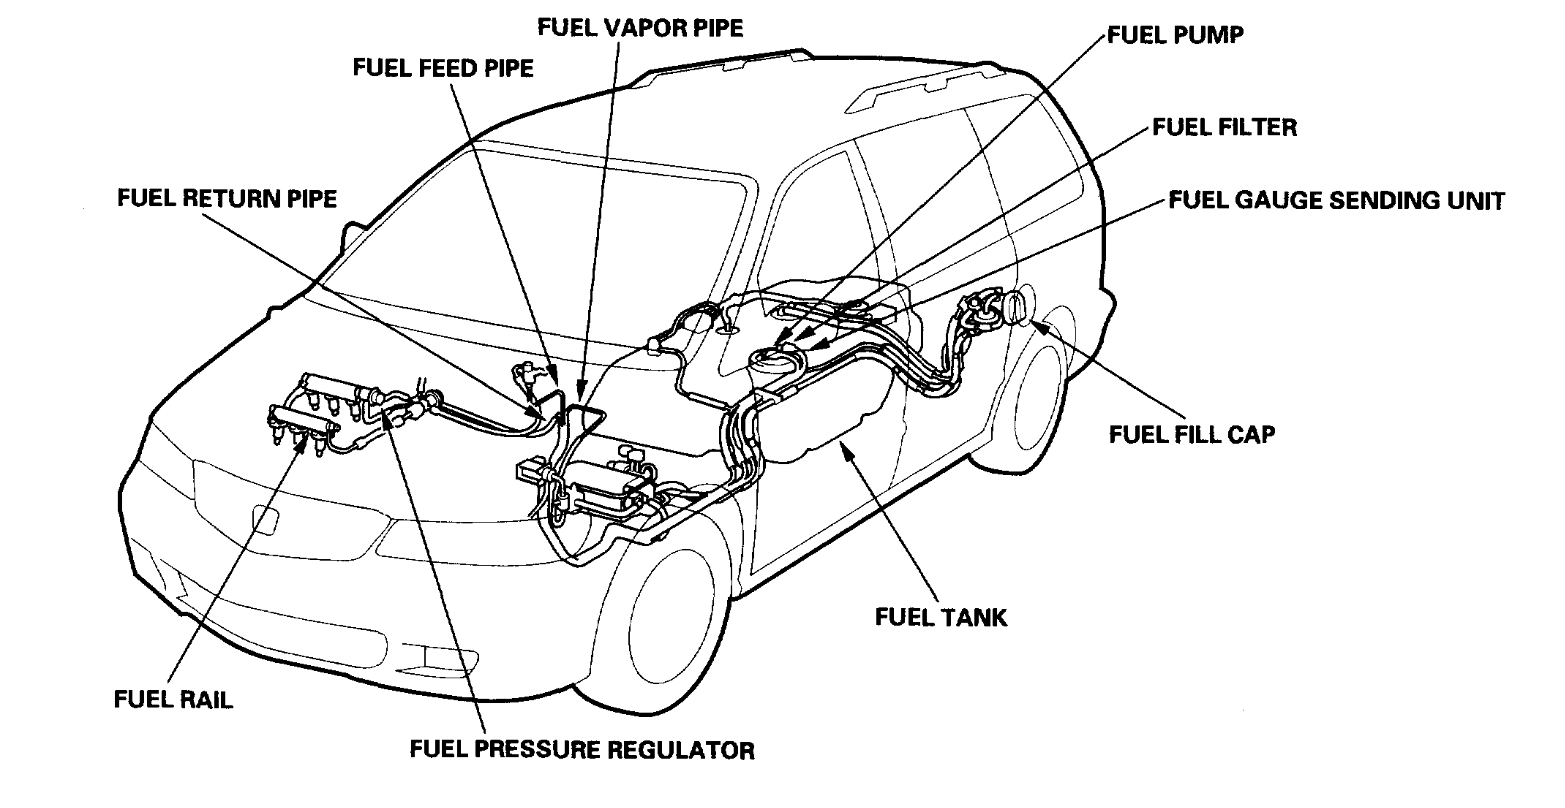 2003 honda odyssey fuel filter location wiring diagram2003 honda odyssey fuel filter location